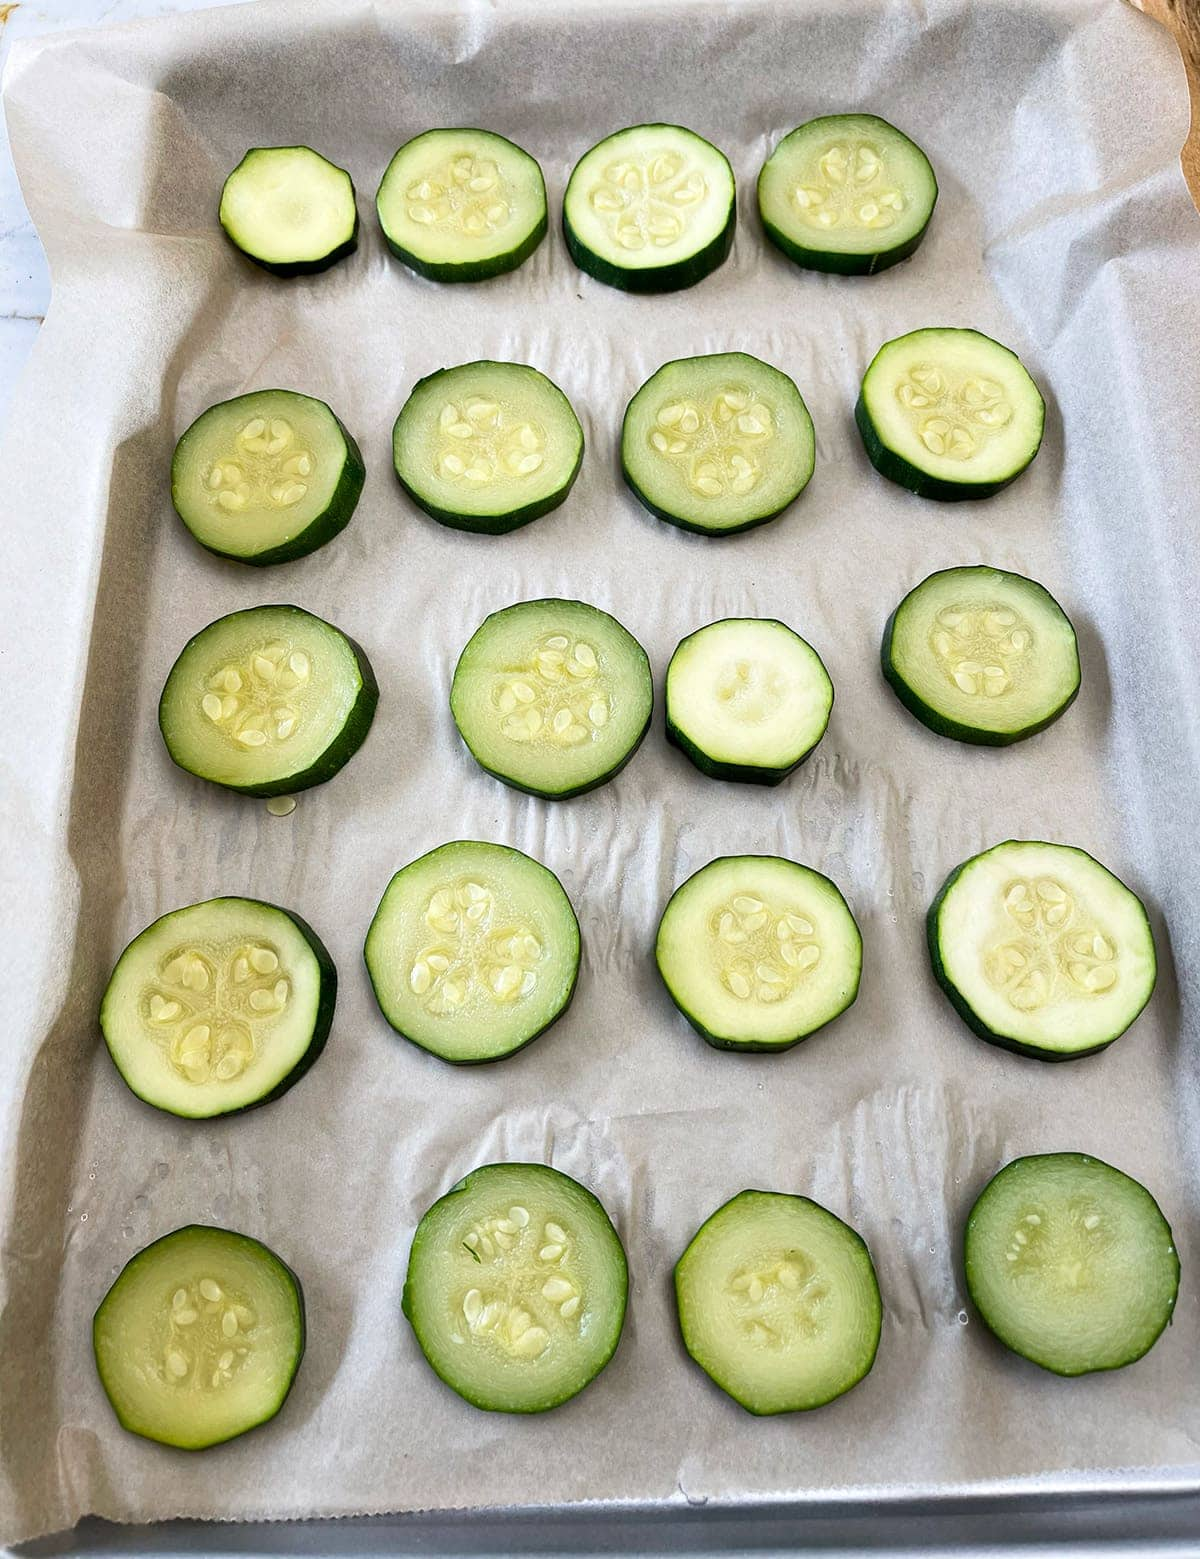 zucchini slices on a baking sheet